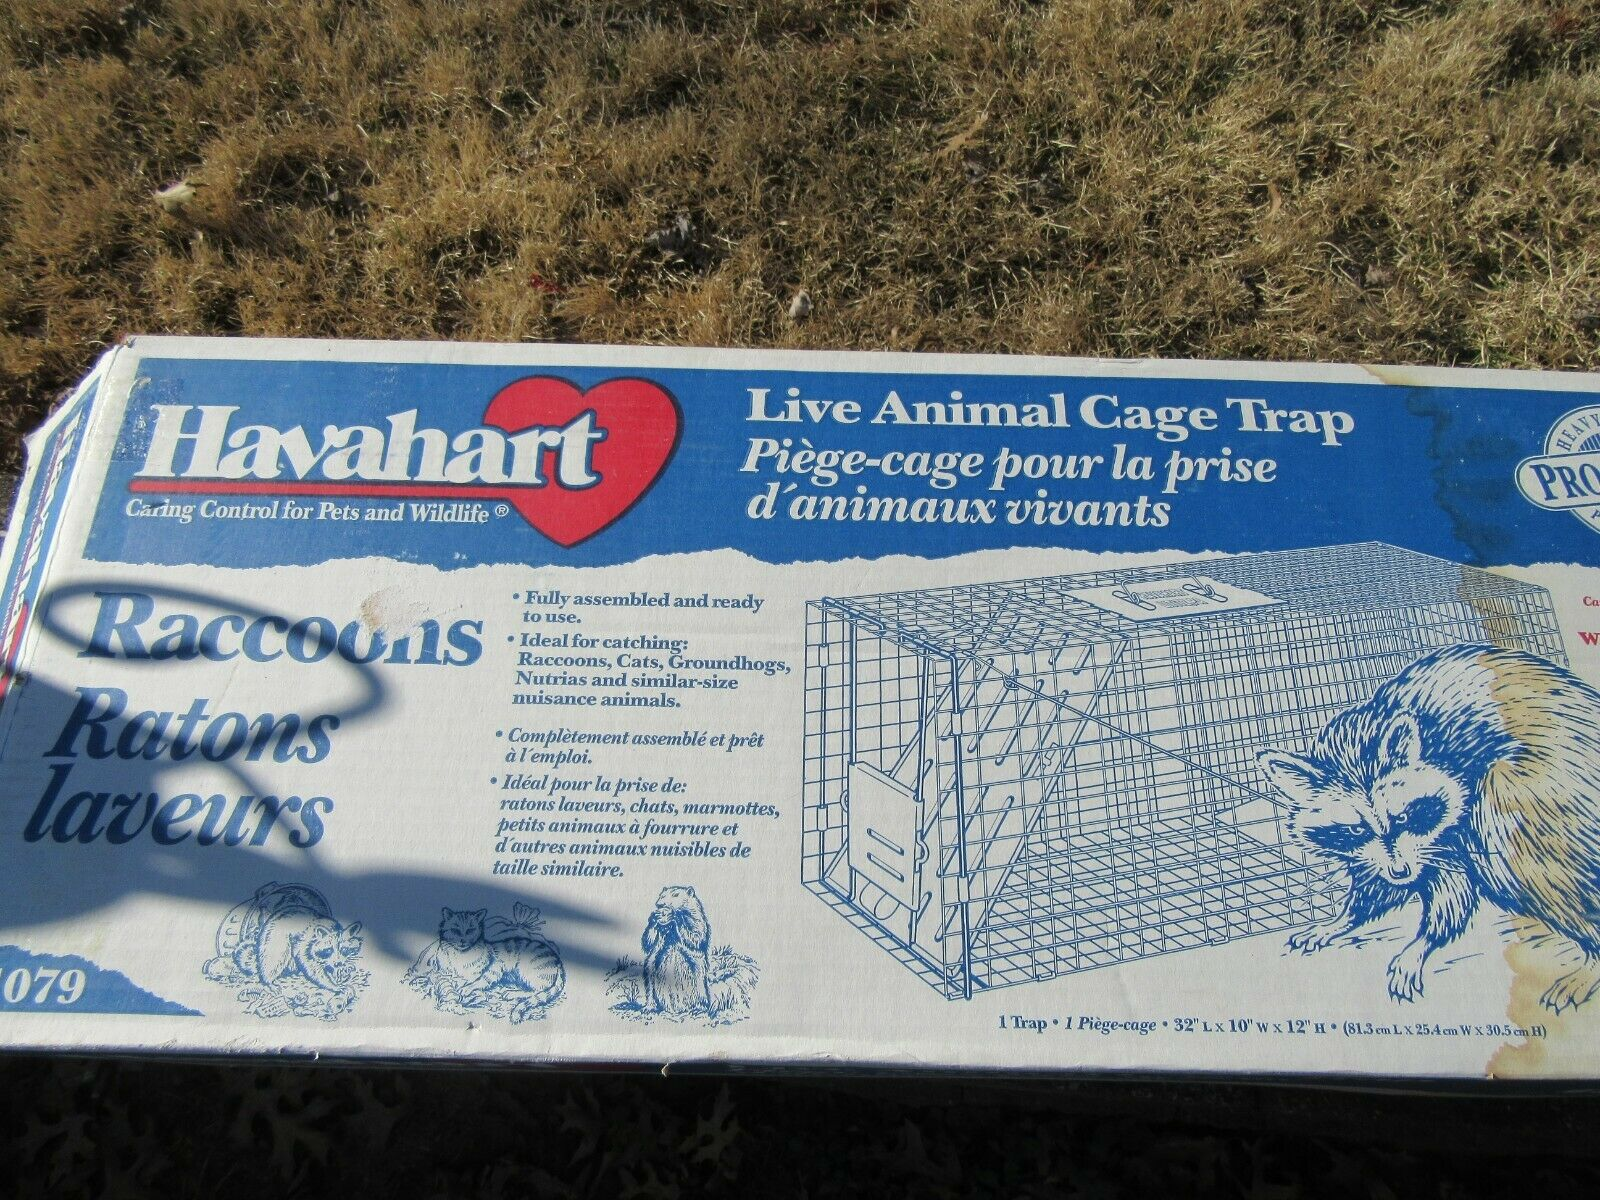 HAVAHART 1079 LIVE ANIMAL CAGE TRAP RACCOONS COON 32X10X12 S